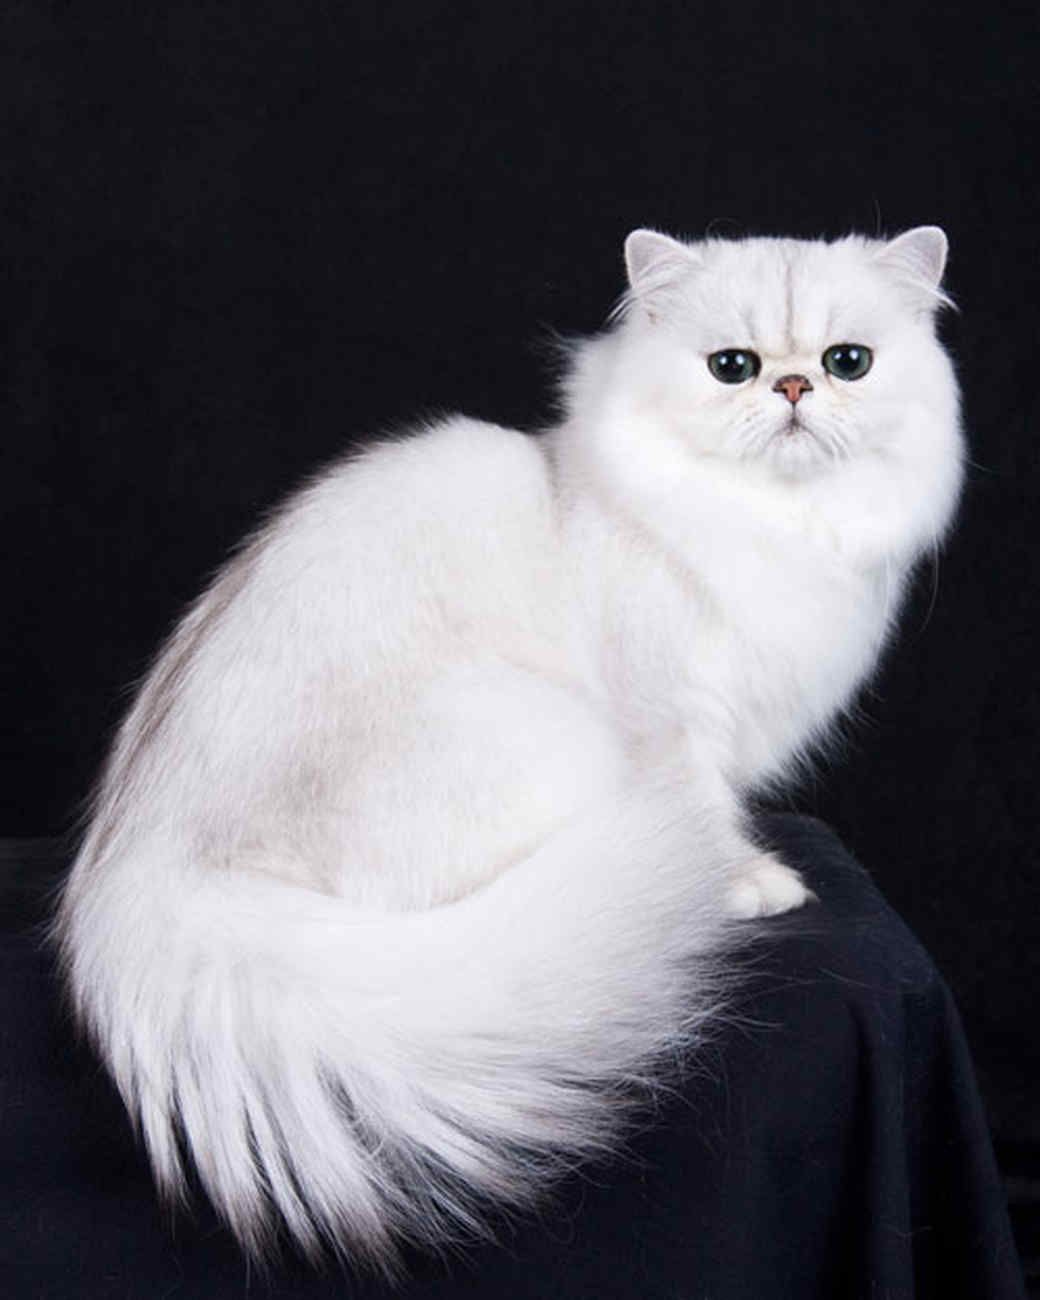 Cfa Pedigreed Breed Persian Cats Of All Different Colors And Patterns Persian Cat Cat Breeds Cats